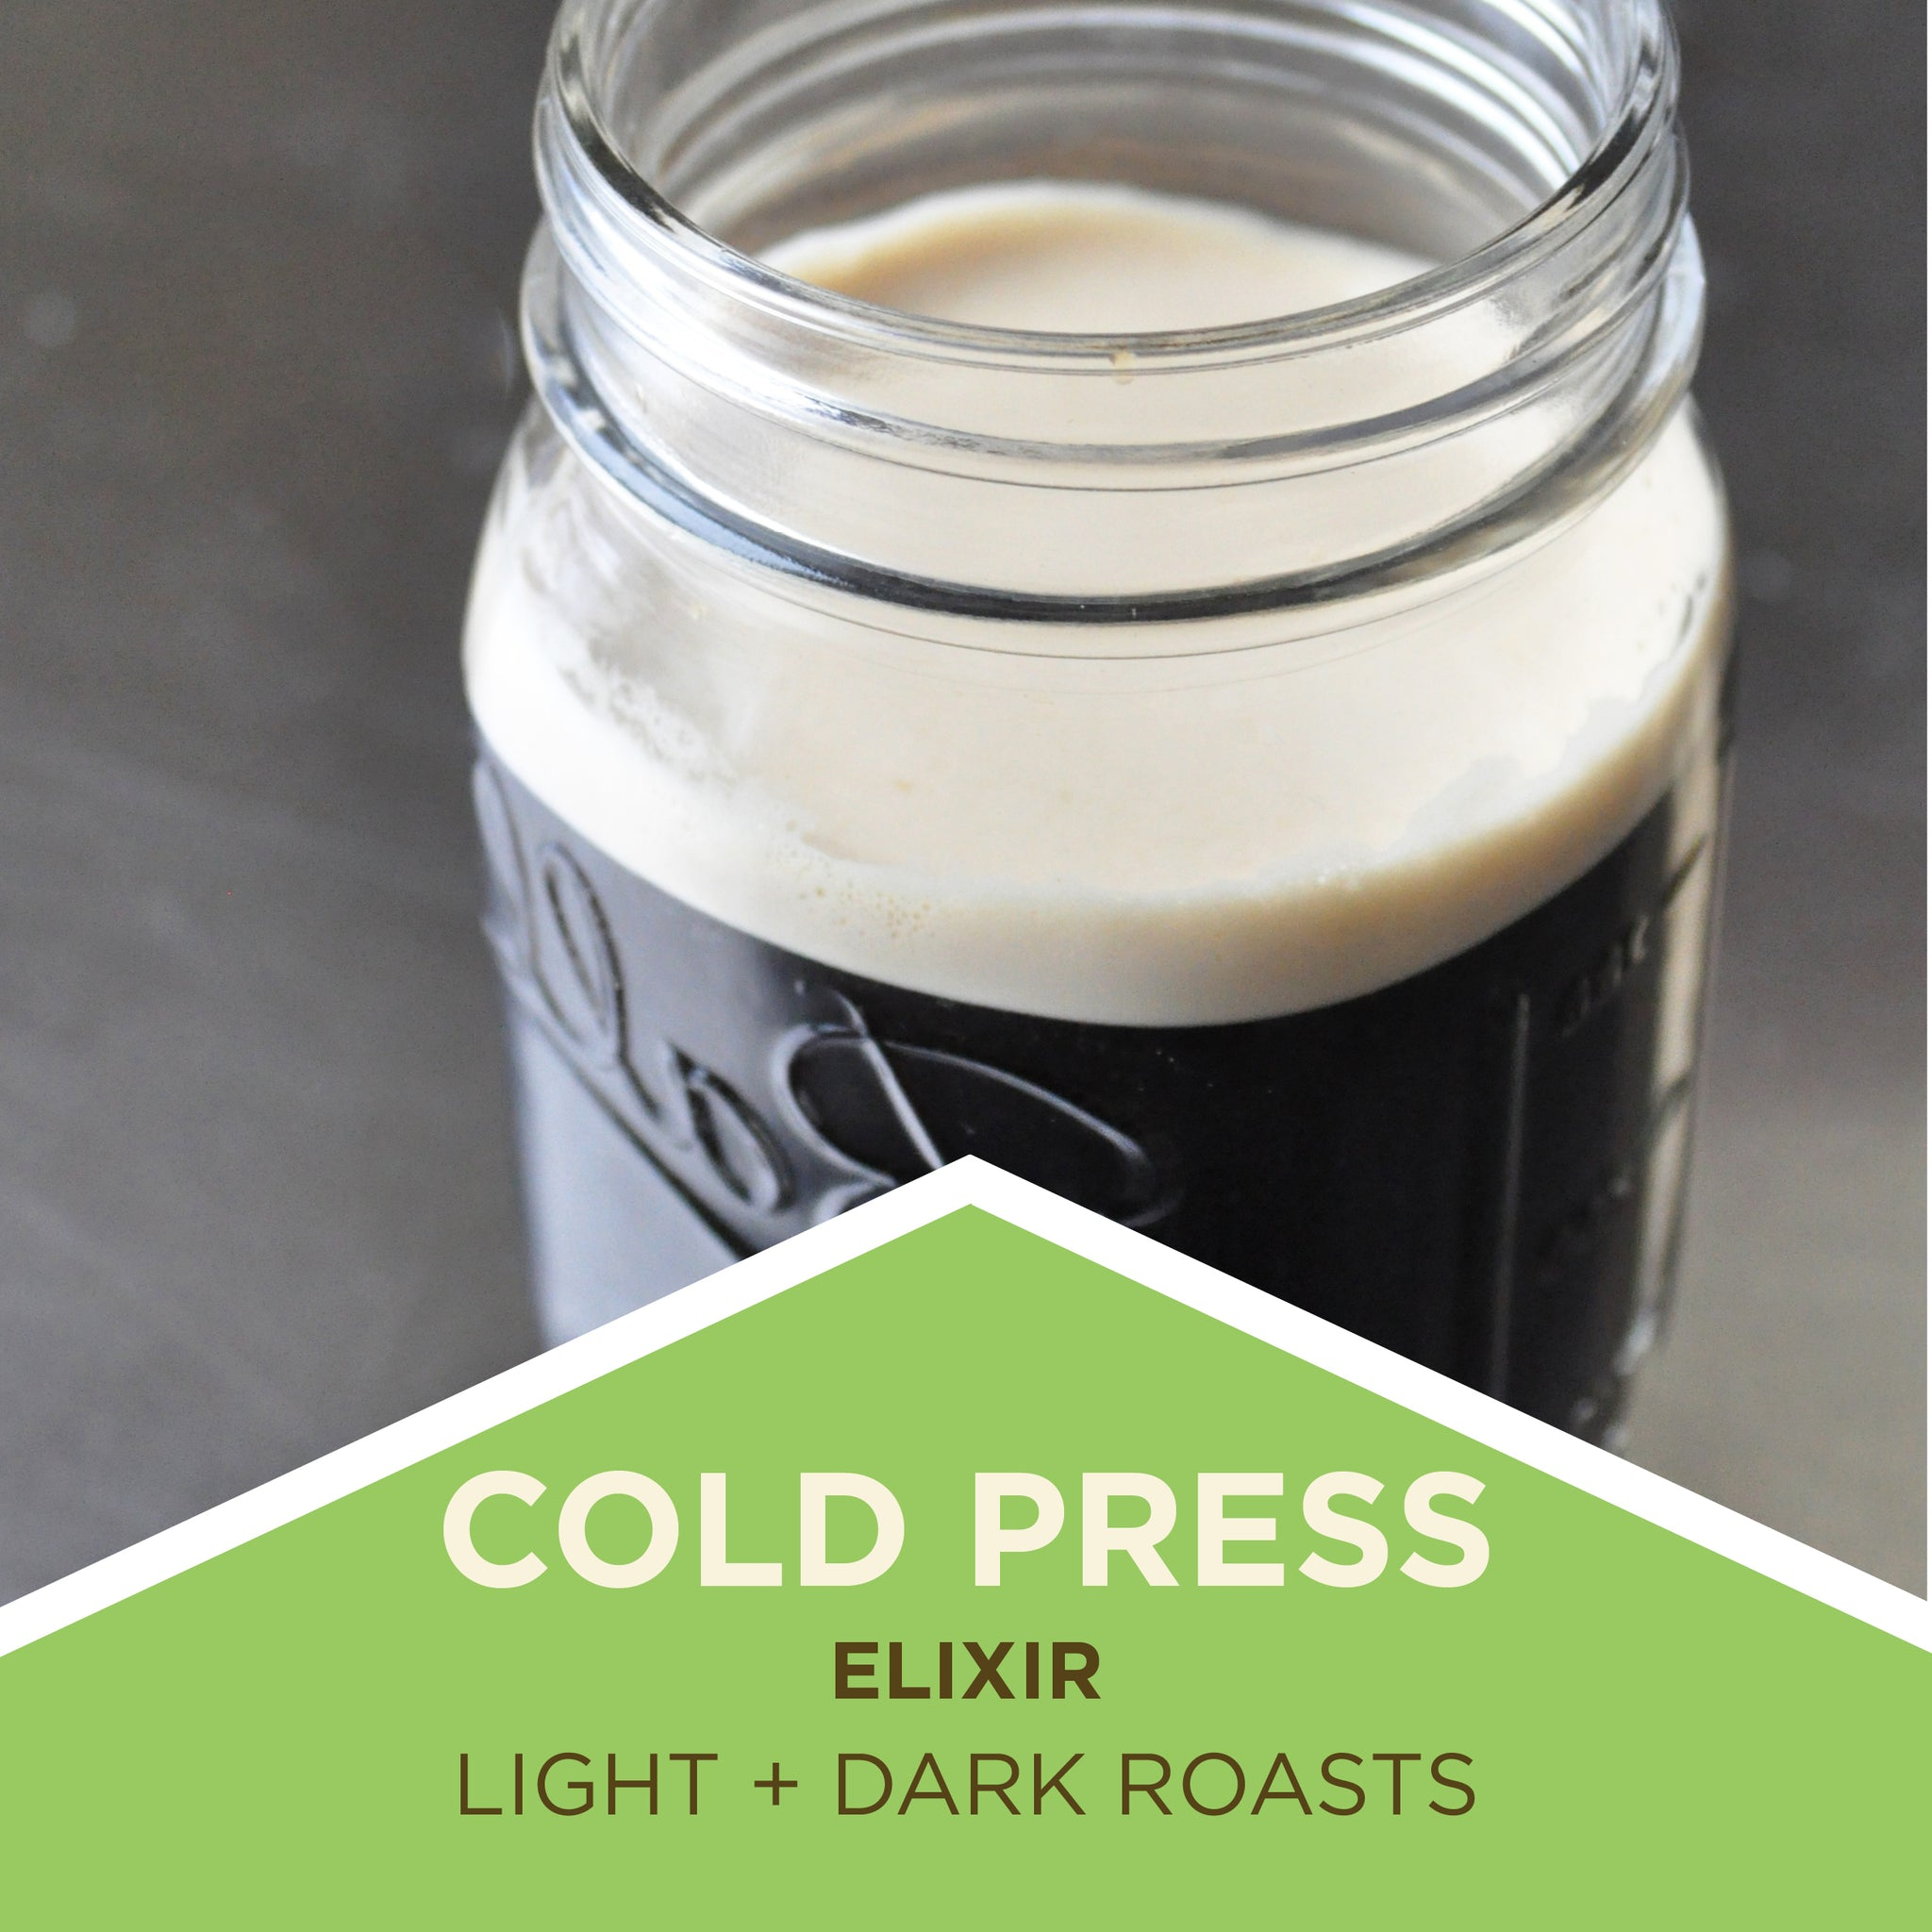 Cold Press Elixir - Cold Brew Coffee